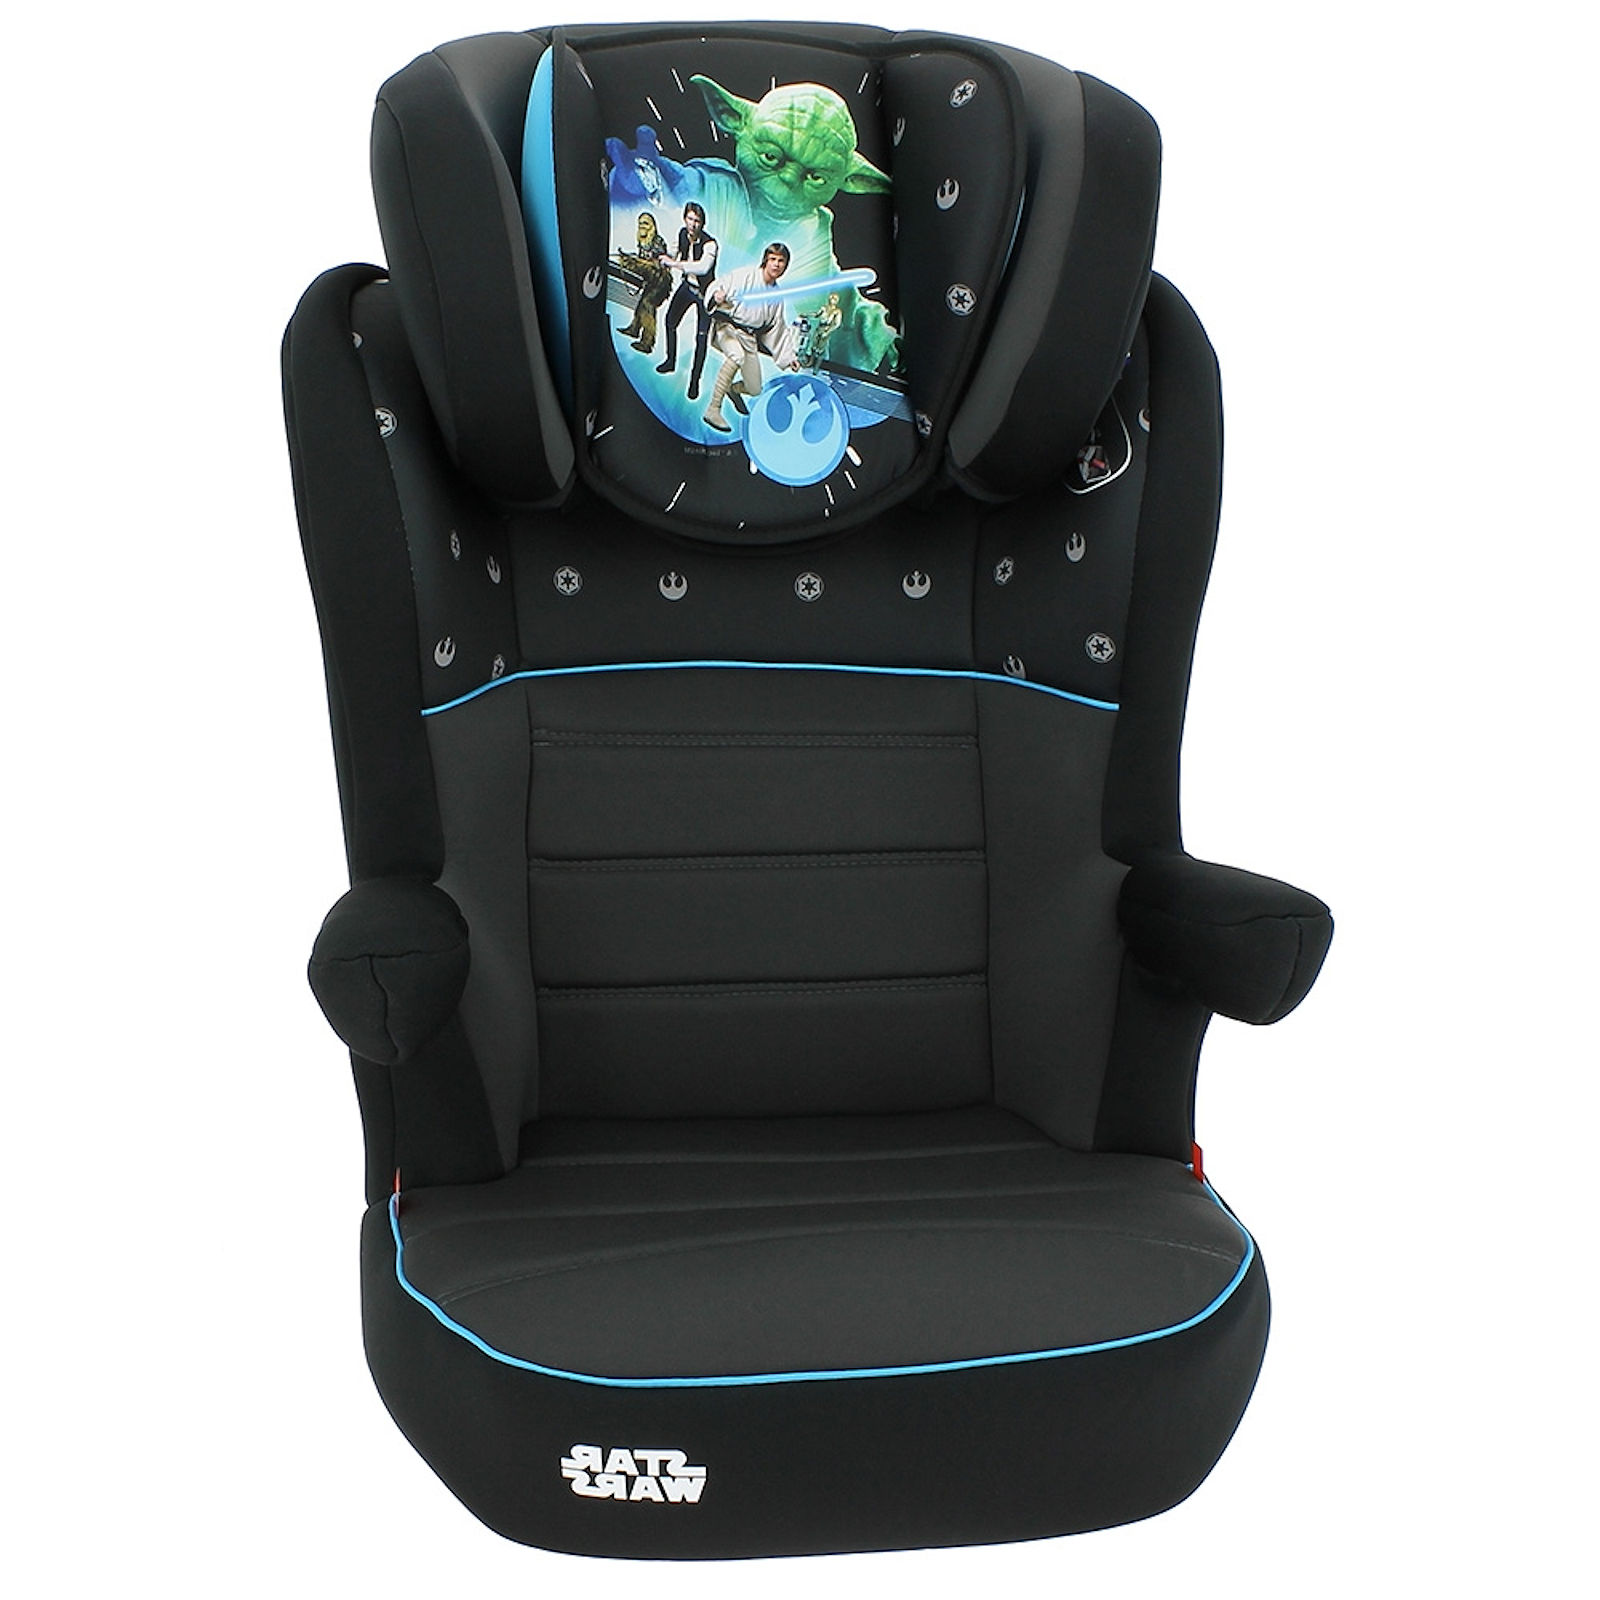 173c85a8449 Nania Deluxe Rway Group 2 3 High Back Booster Car Seat - Luke Skywalker